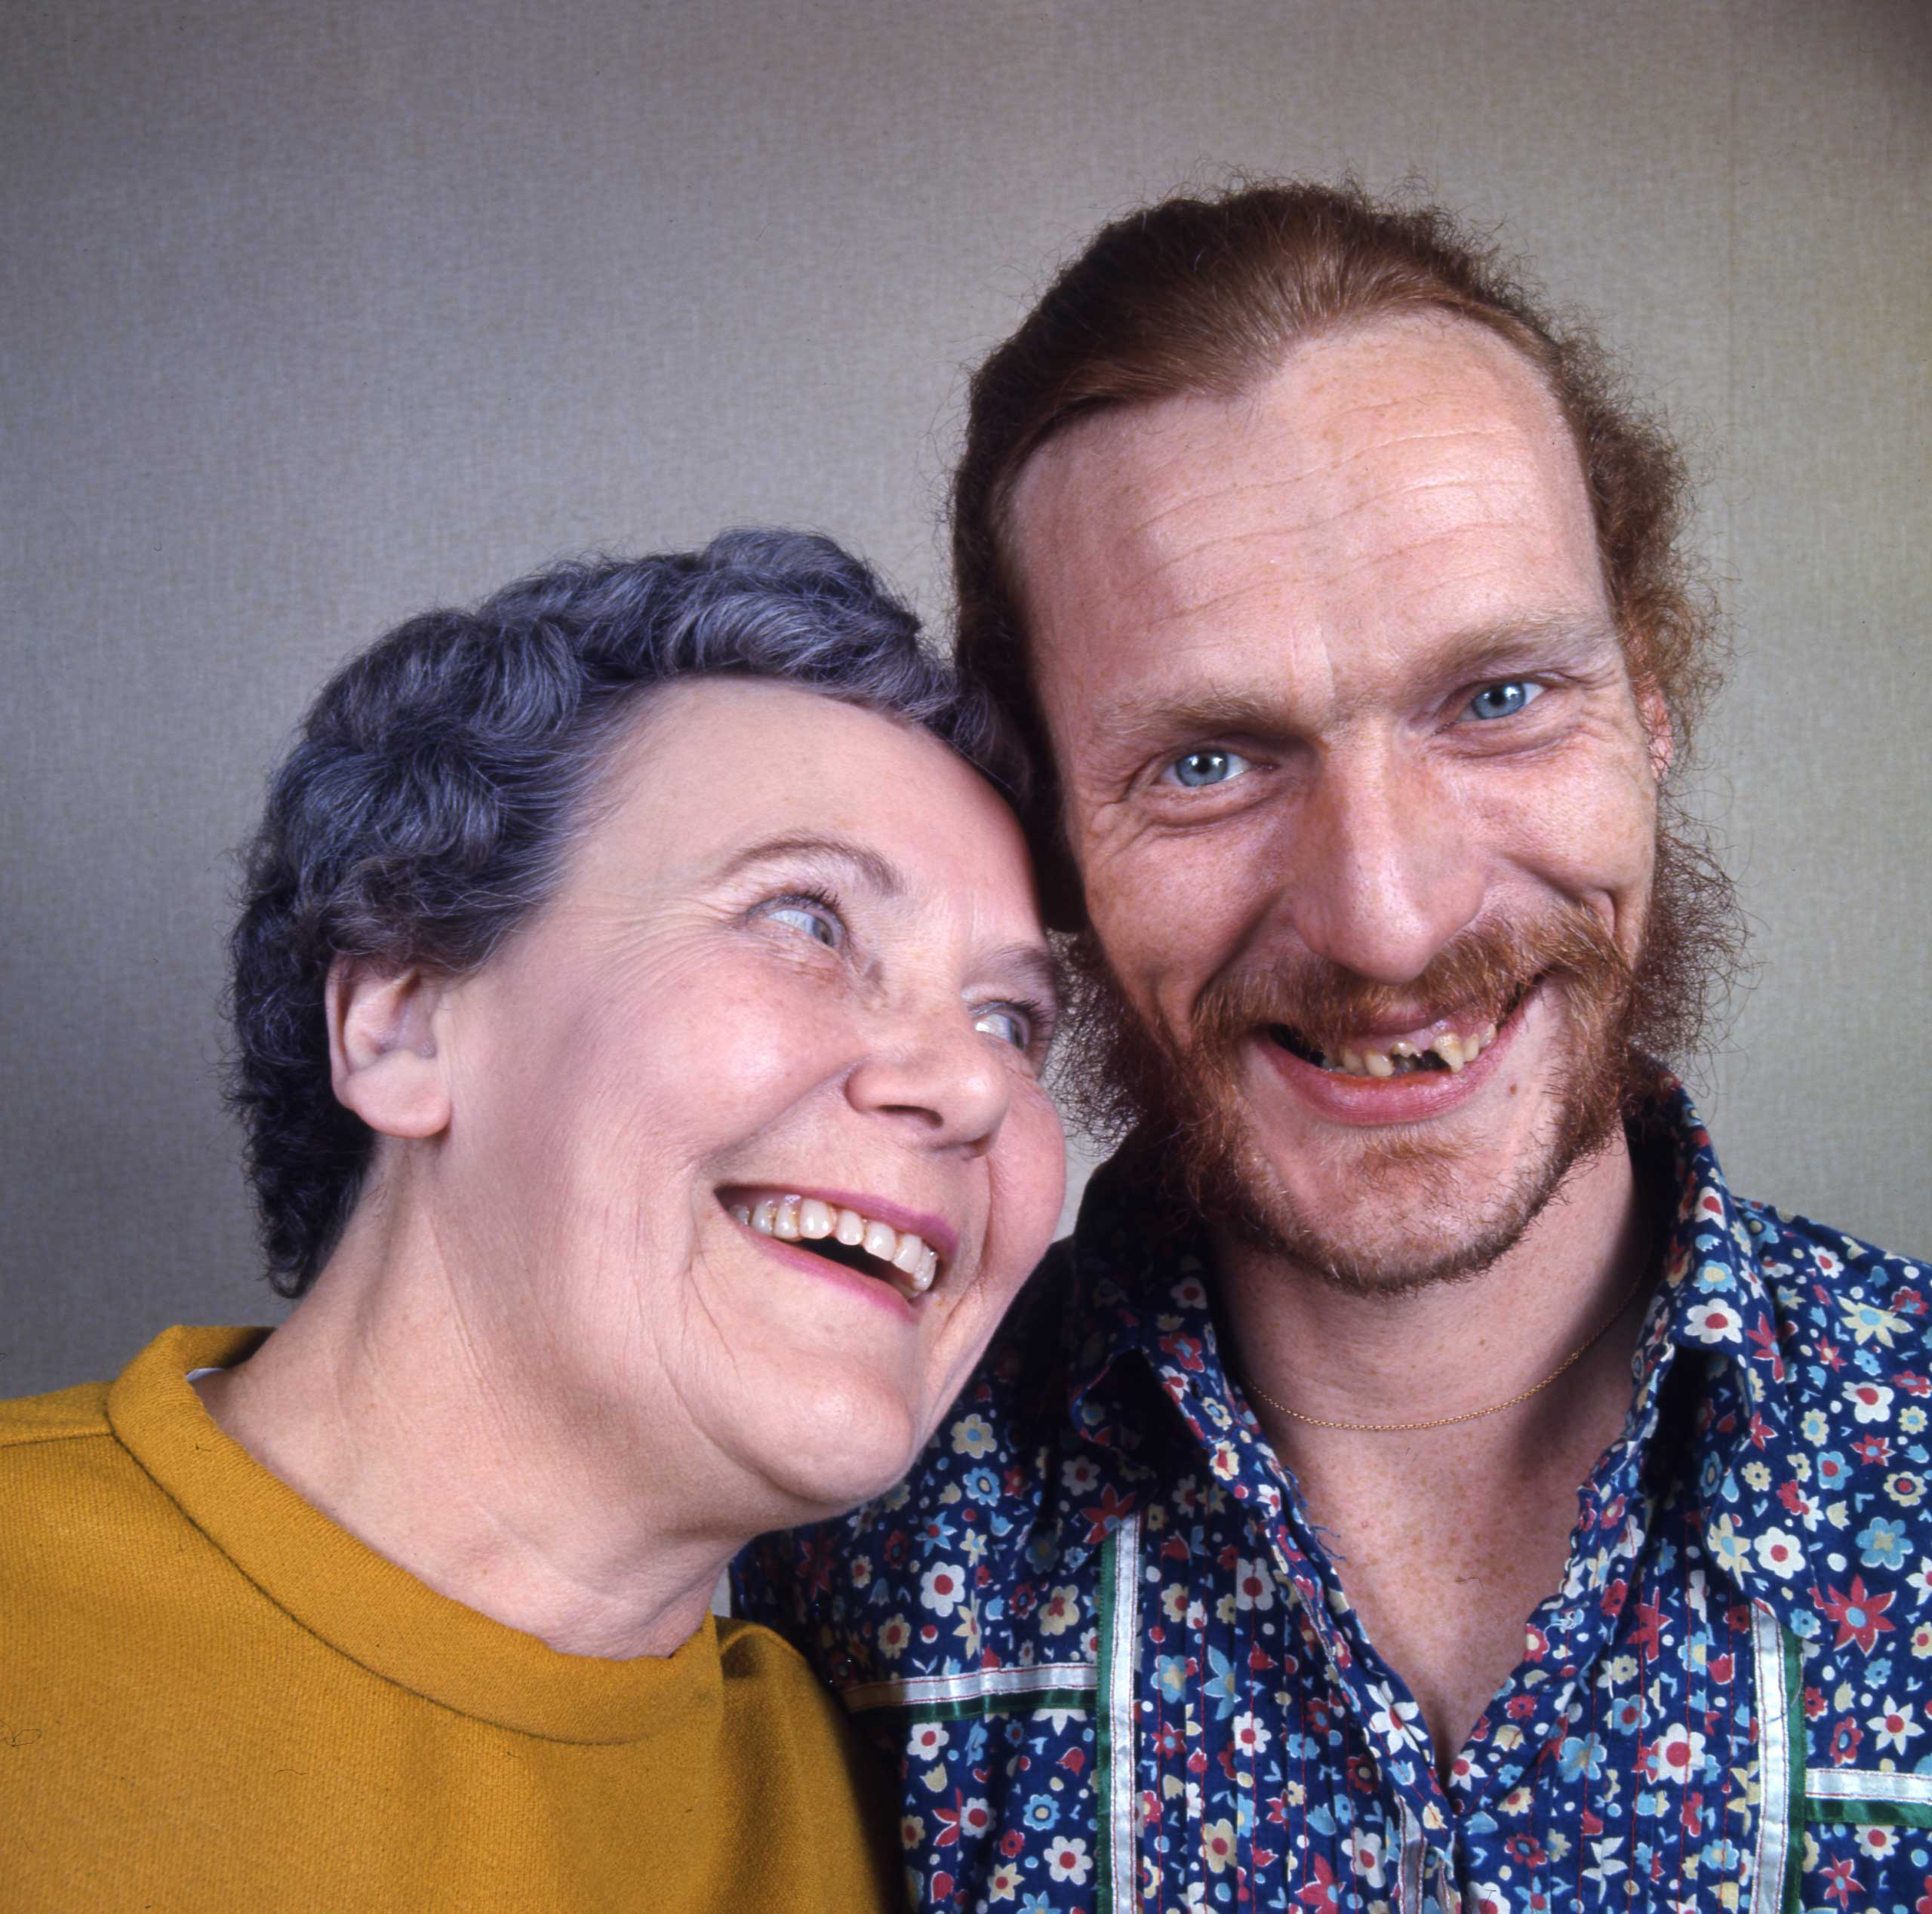 <b>Not published in LIFE.</b> Ginger Baker, the Cream and Blind Faith drummer, flashes a rare smile with his mother Ruby Streatfield inside her rowhouse in Bexley, outside London, in 1970.